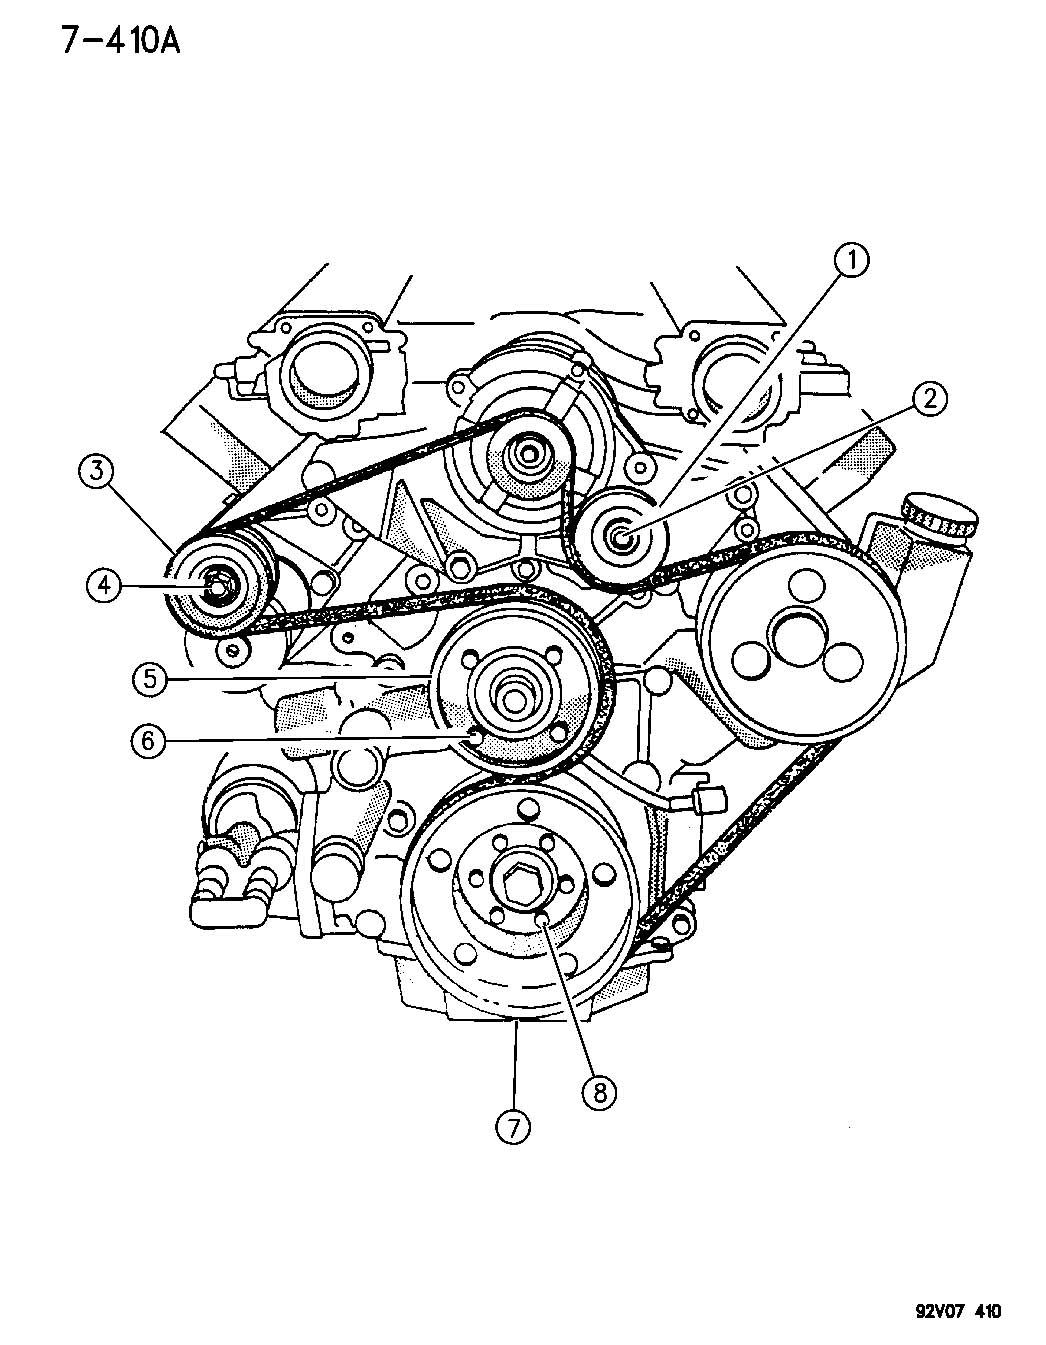 V8 triton engine diagram likewise 2yofu find 1994 chevrolet factory electrical wiring diagrams as well dodge